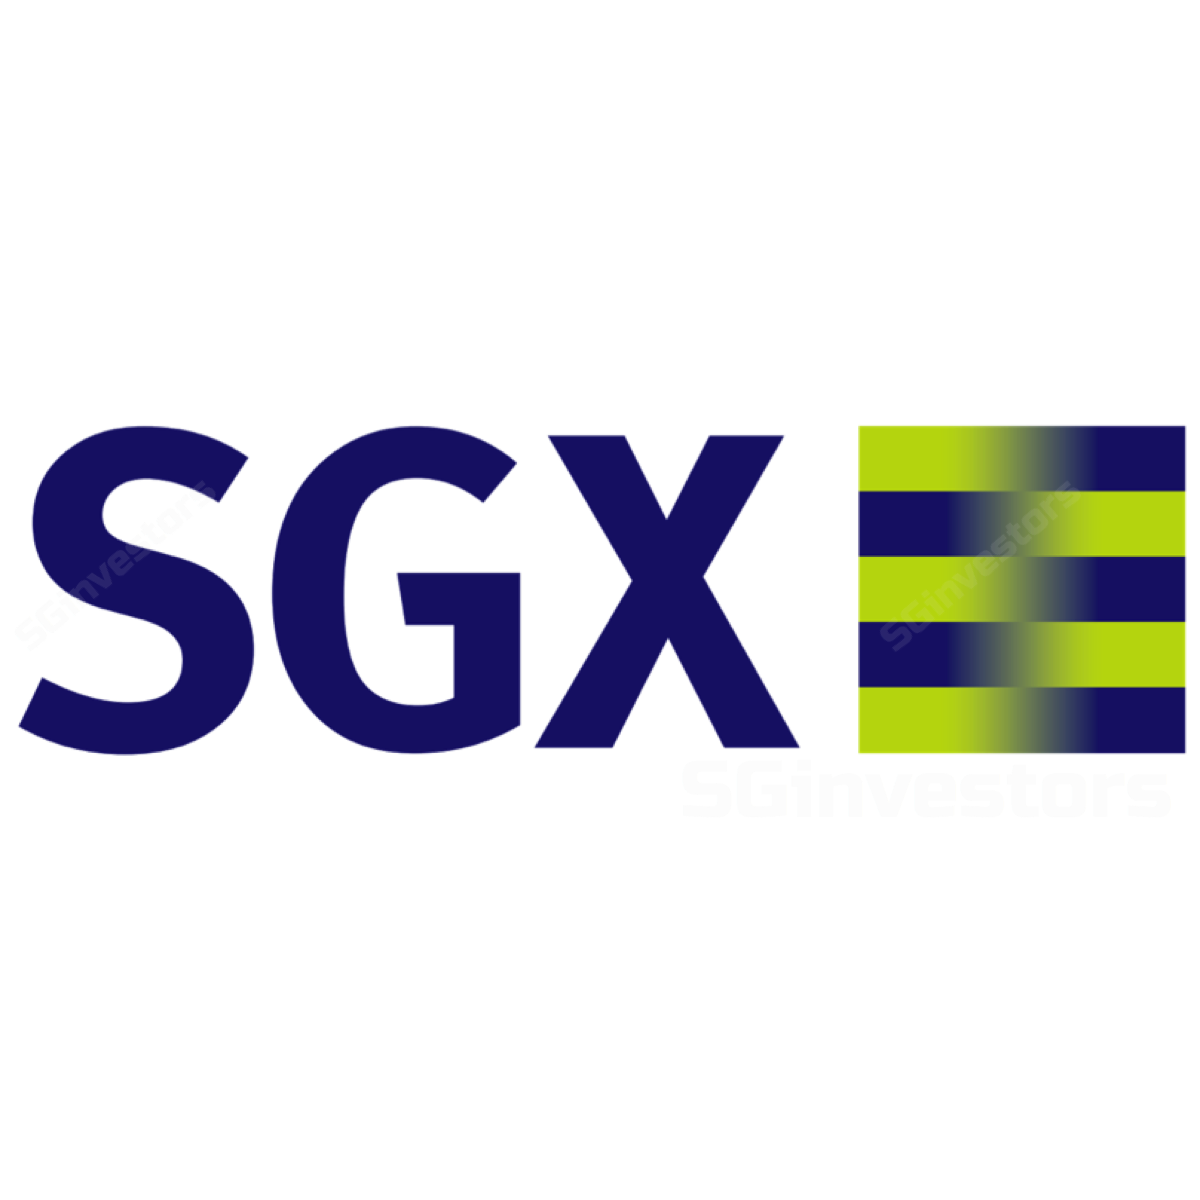 SGX - RHB Invest 2018-02-12: Impacted By Nifty 50 Index Futures Trading